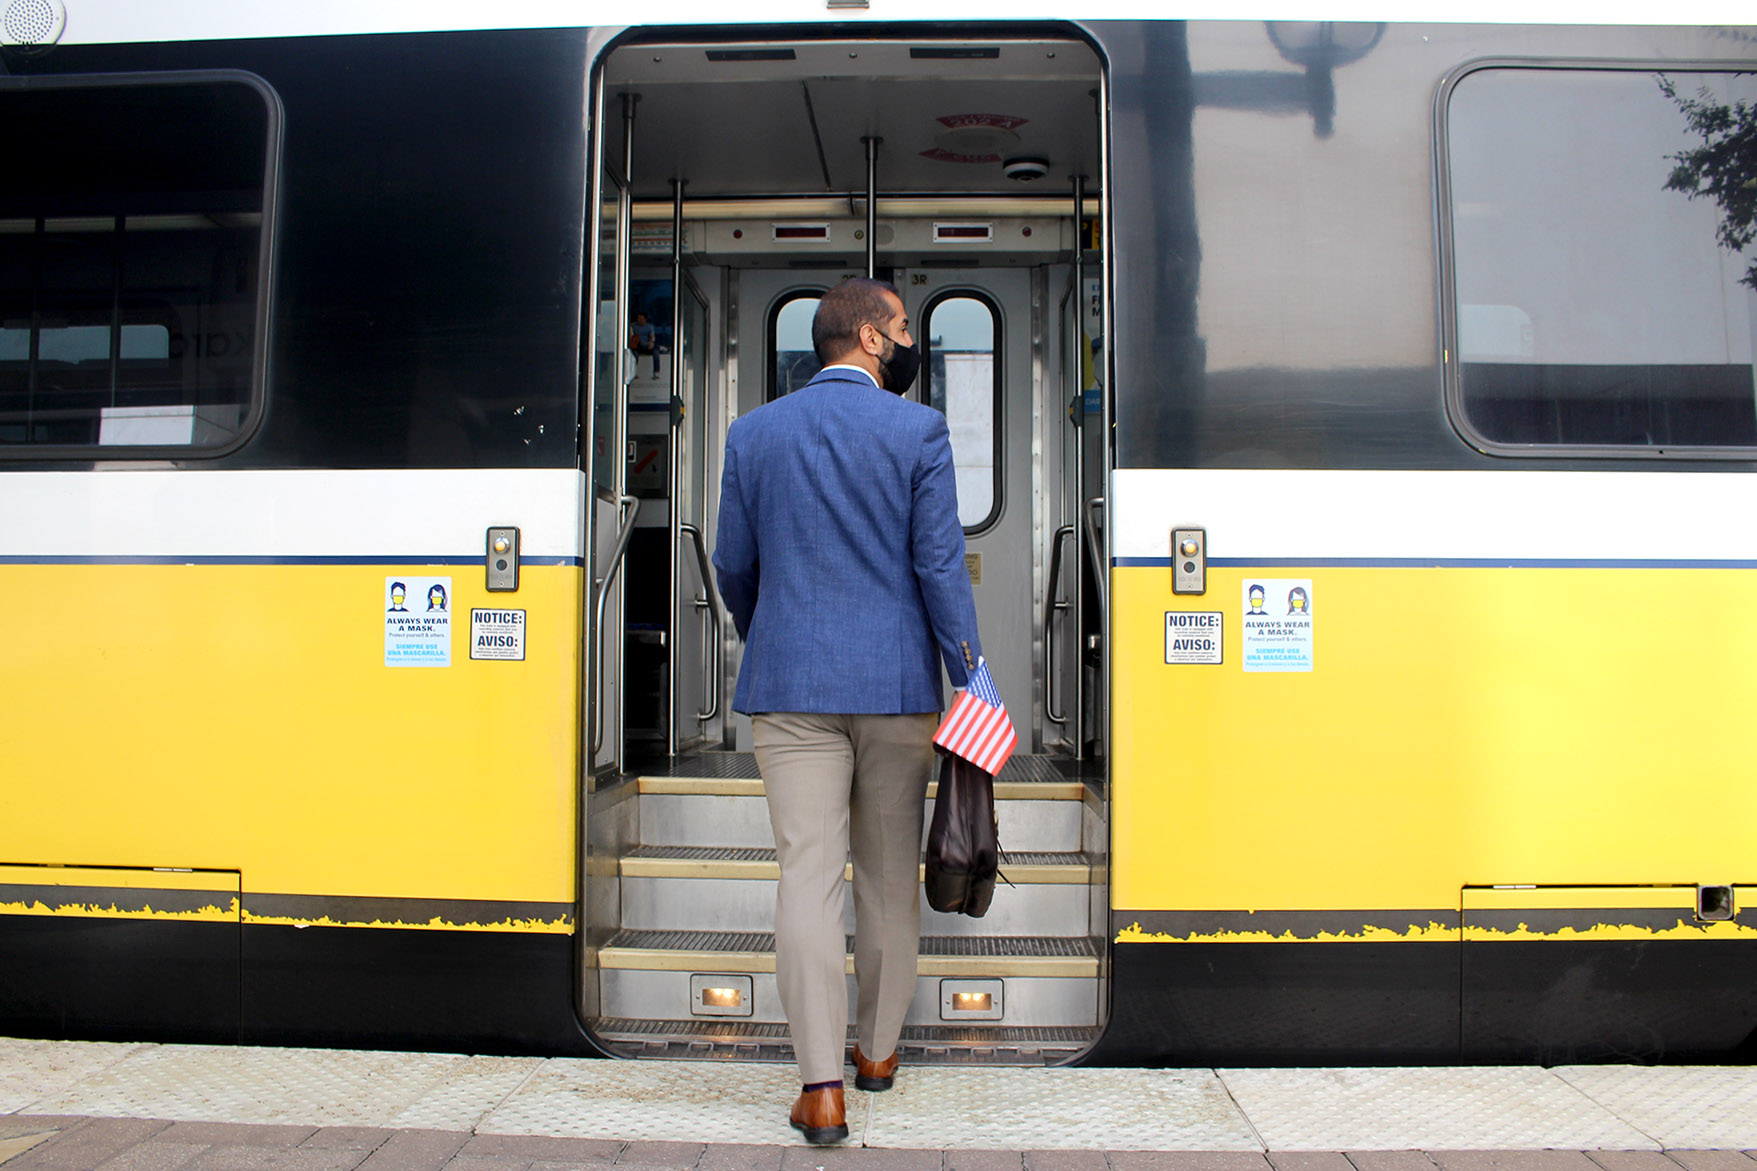 Learn how to find a voting location and ride DART free to vote.